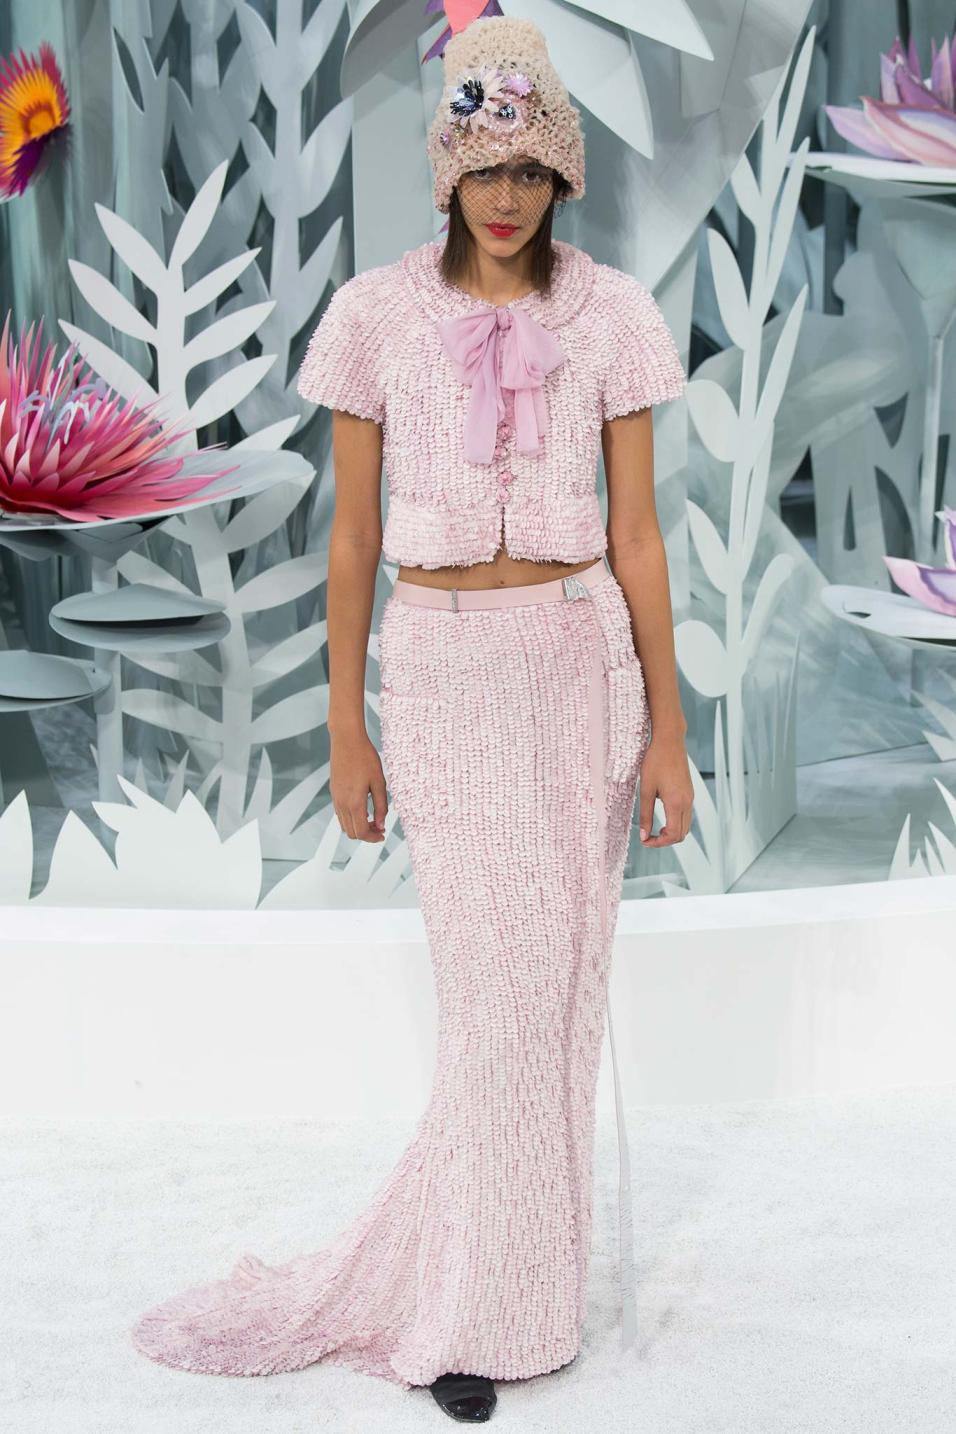 Chanel haute couture spring 2015 14 style blog for Chanel haute couture 2015